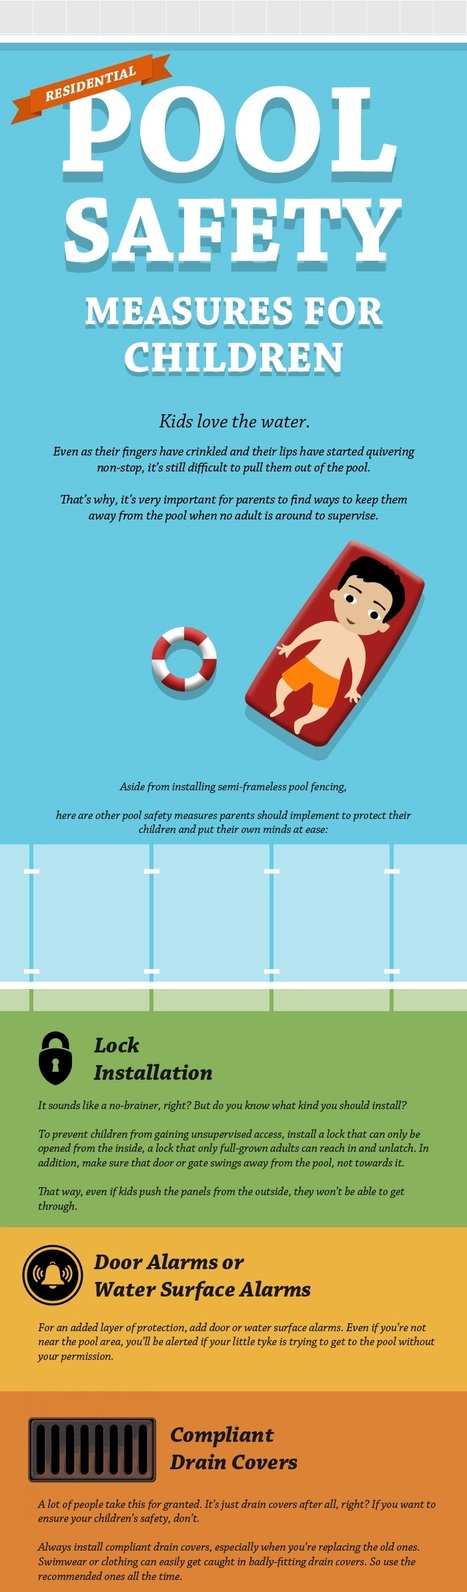 Residential Pool Safety Measures for Children | Glass Fencing | Scoop.it